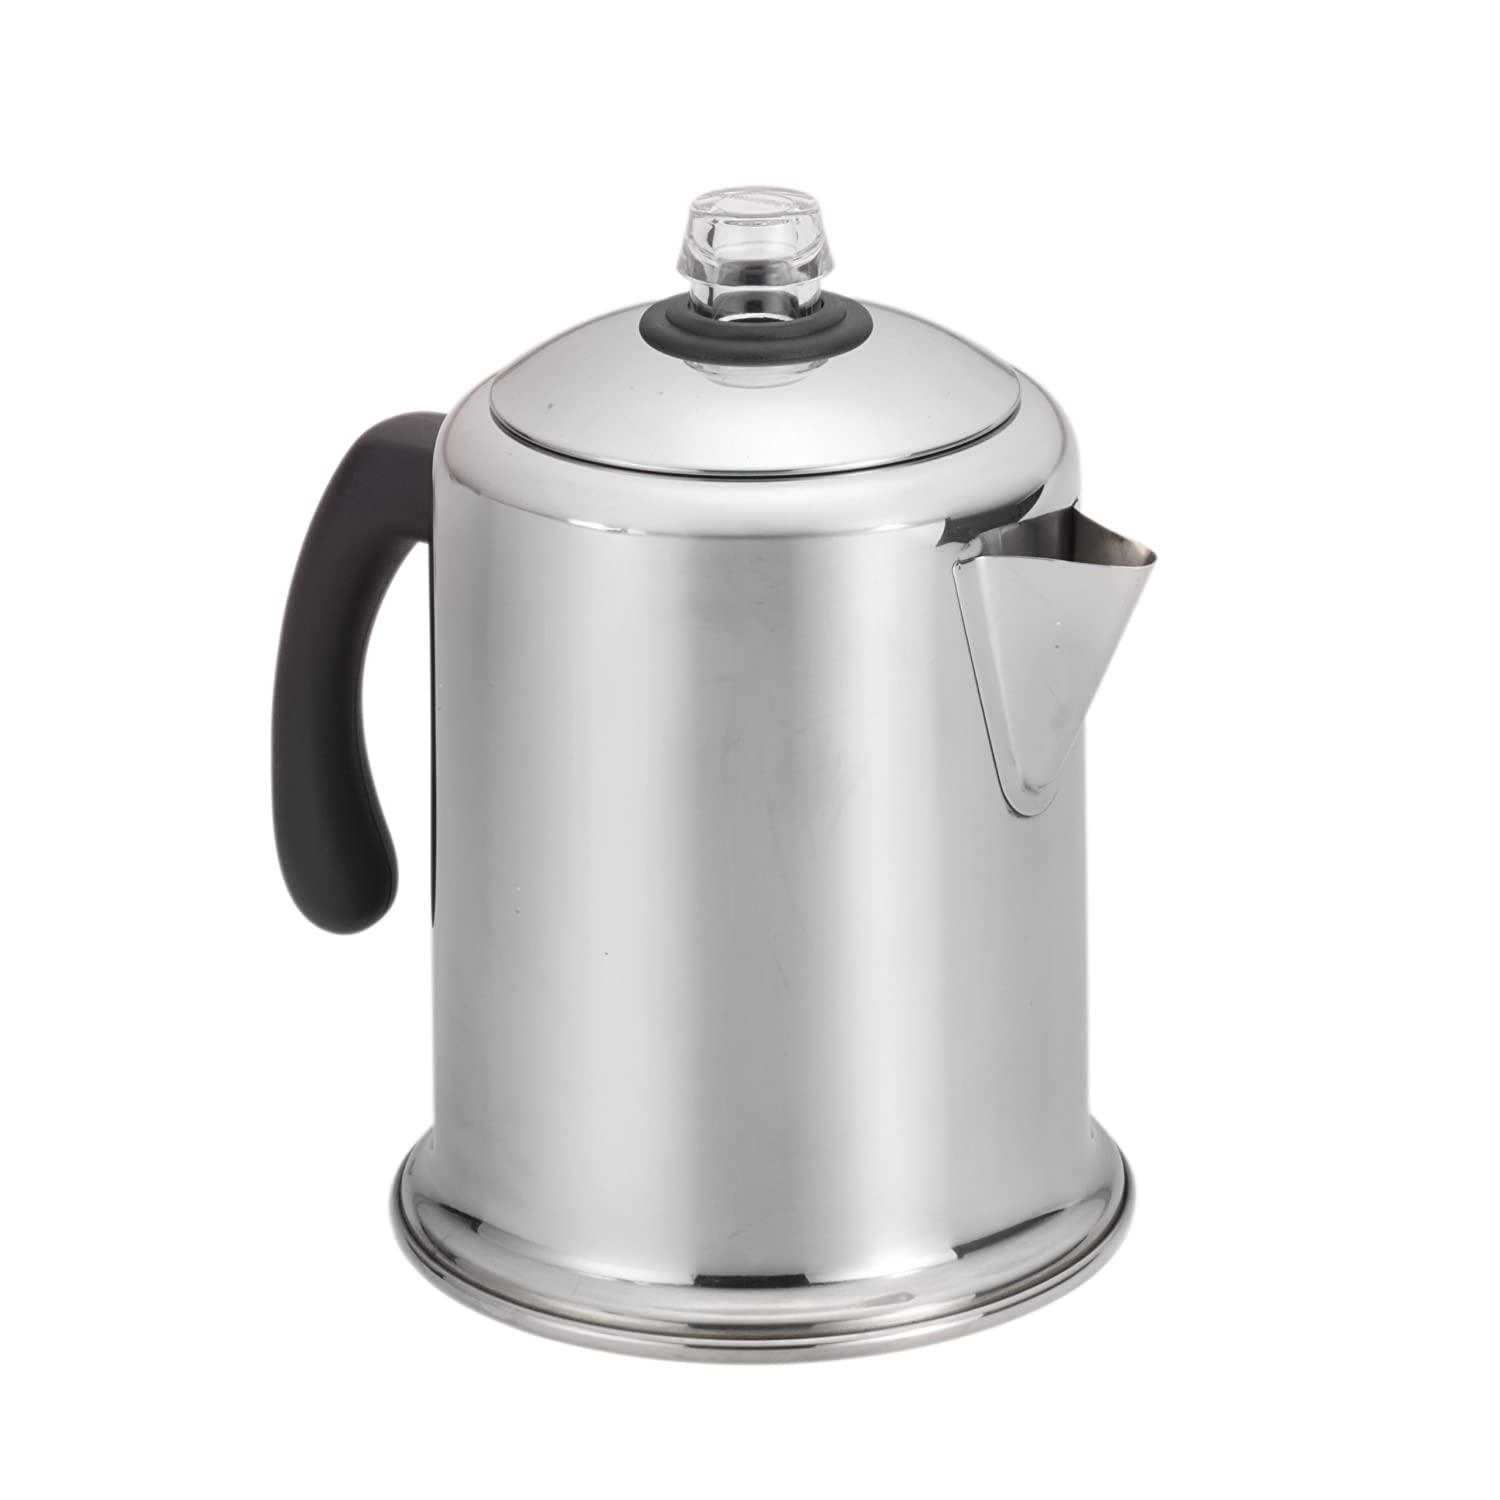 Coffee Maker With Percolator : Farberware S Steel 8-Cup Coffee Maker Percolator Stove Top Brewer Maker Moka Pot eBay